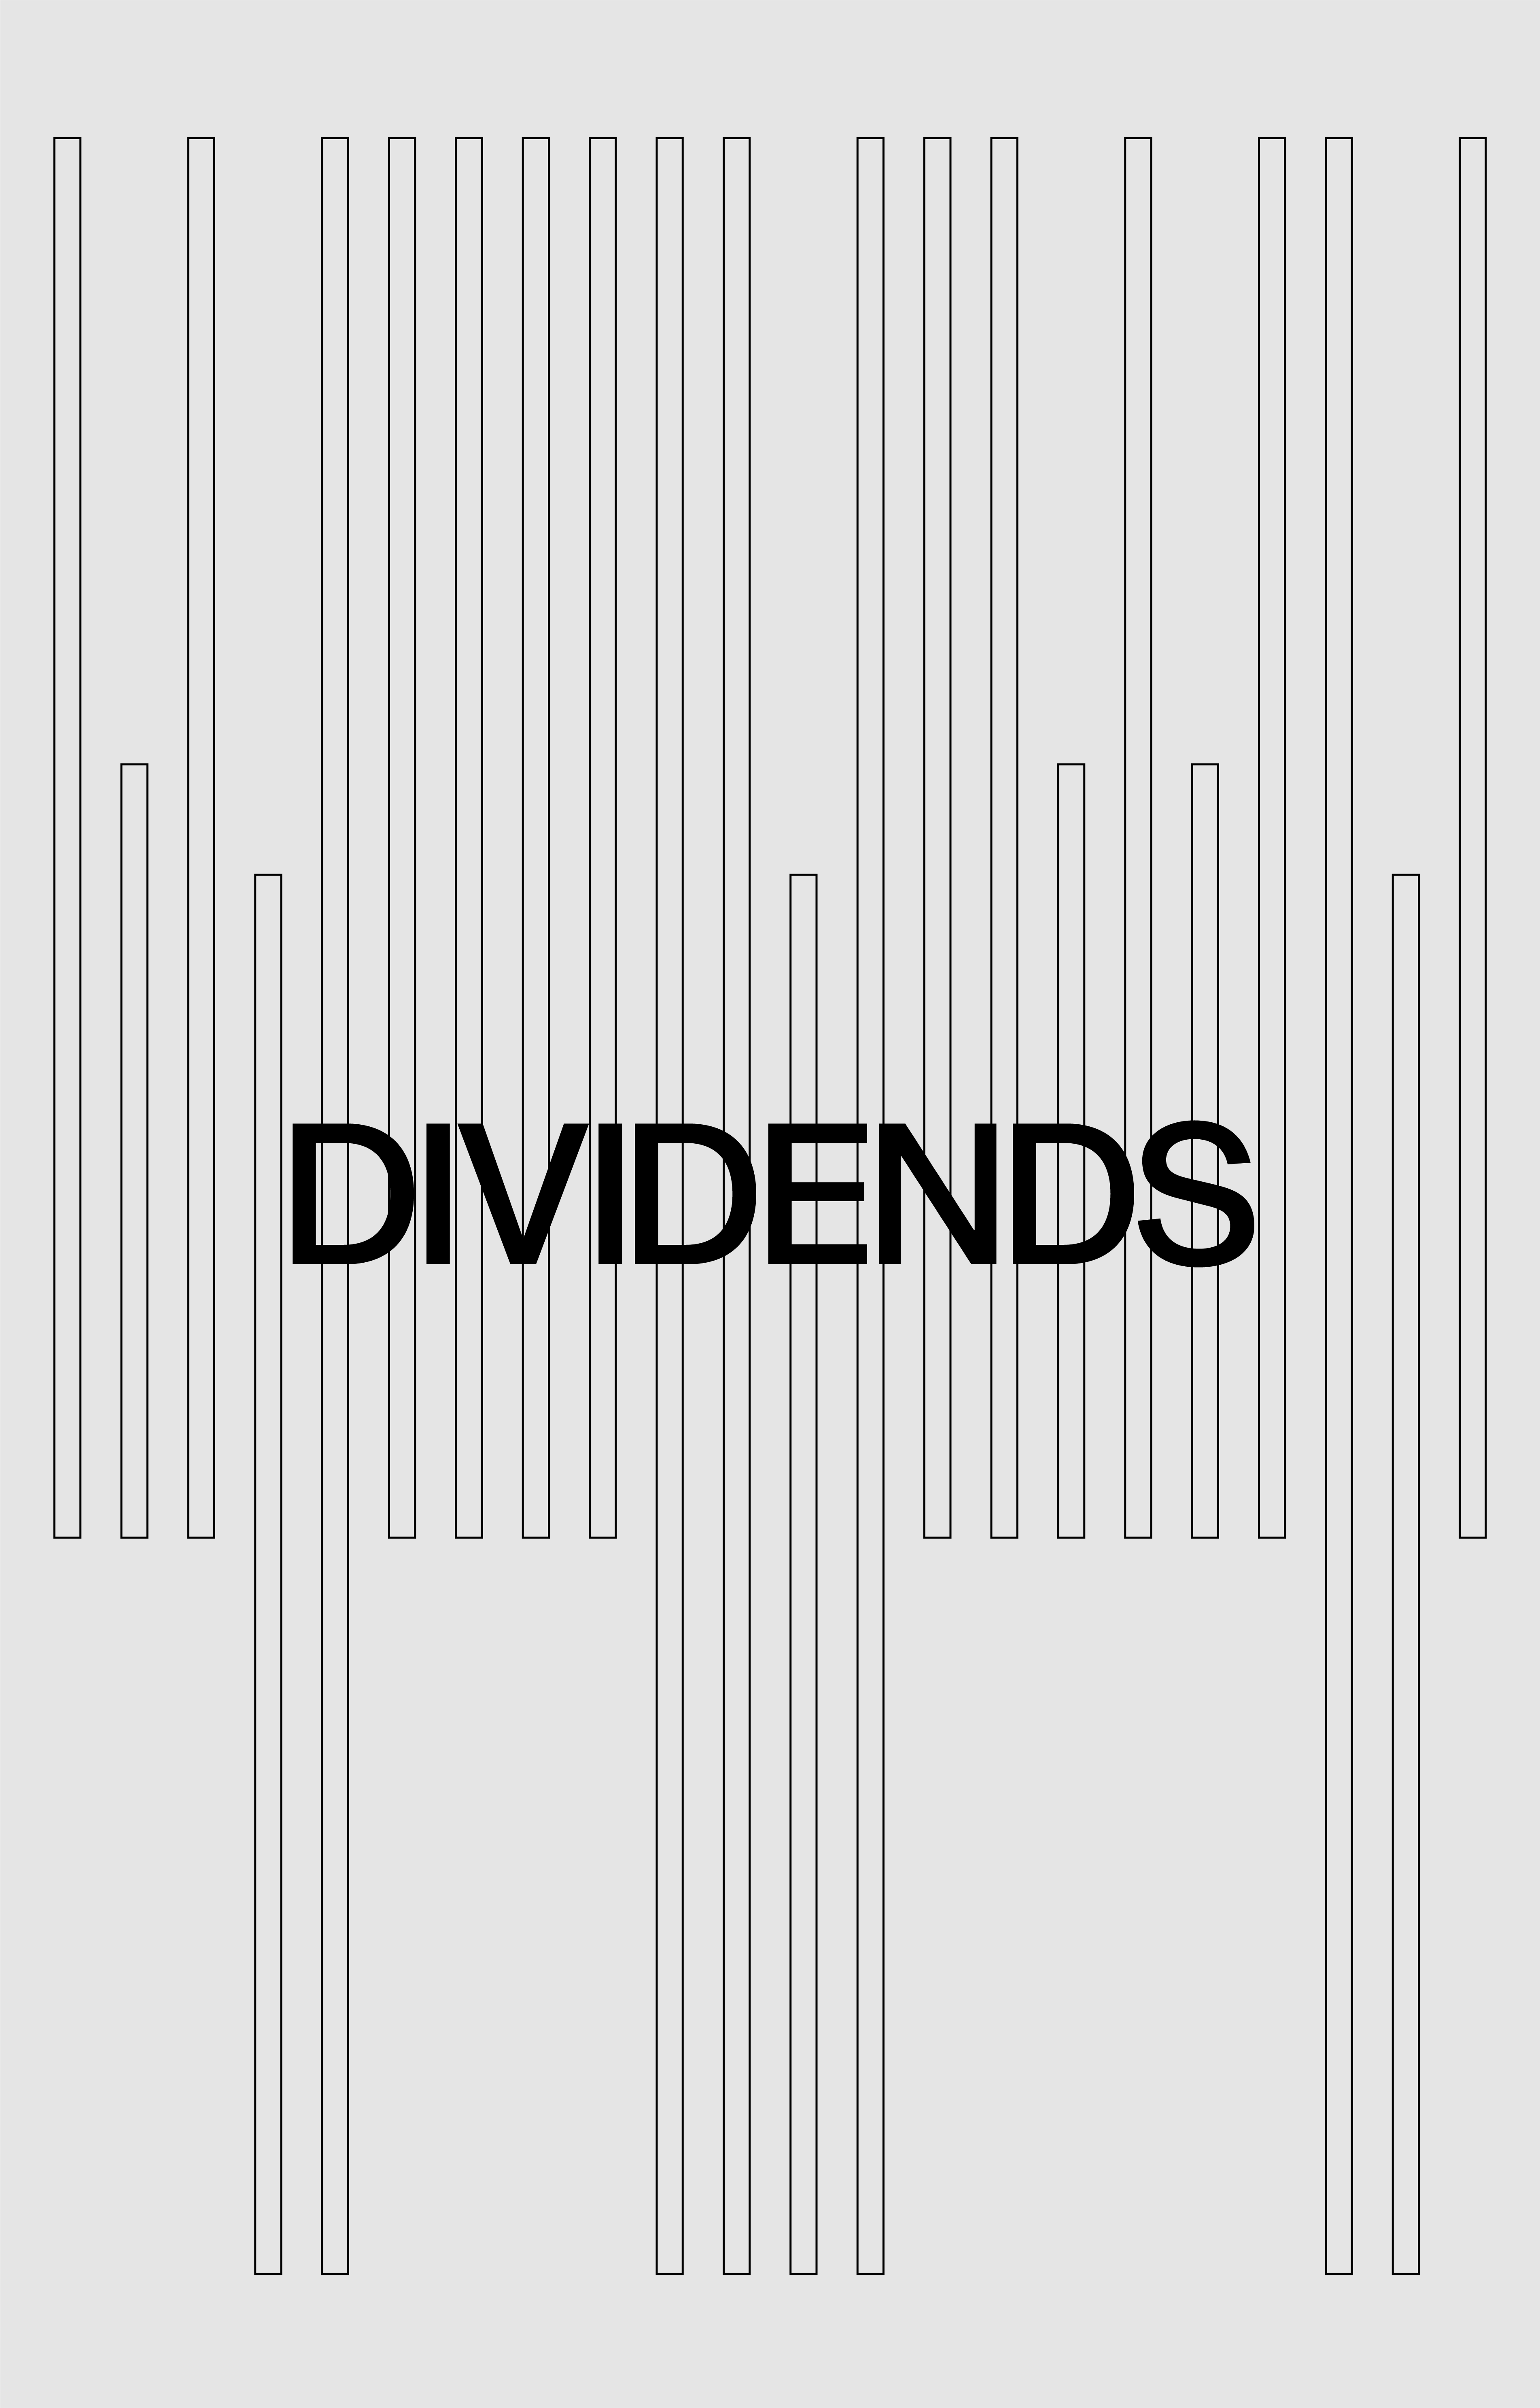 Dividend Investing: What Is It and What to Expect